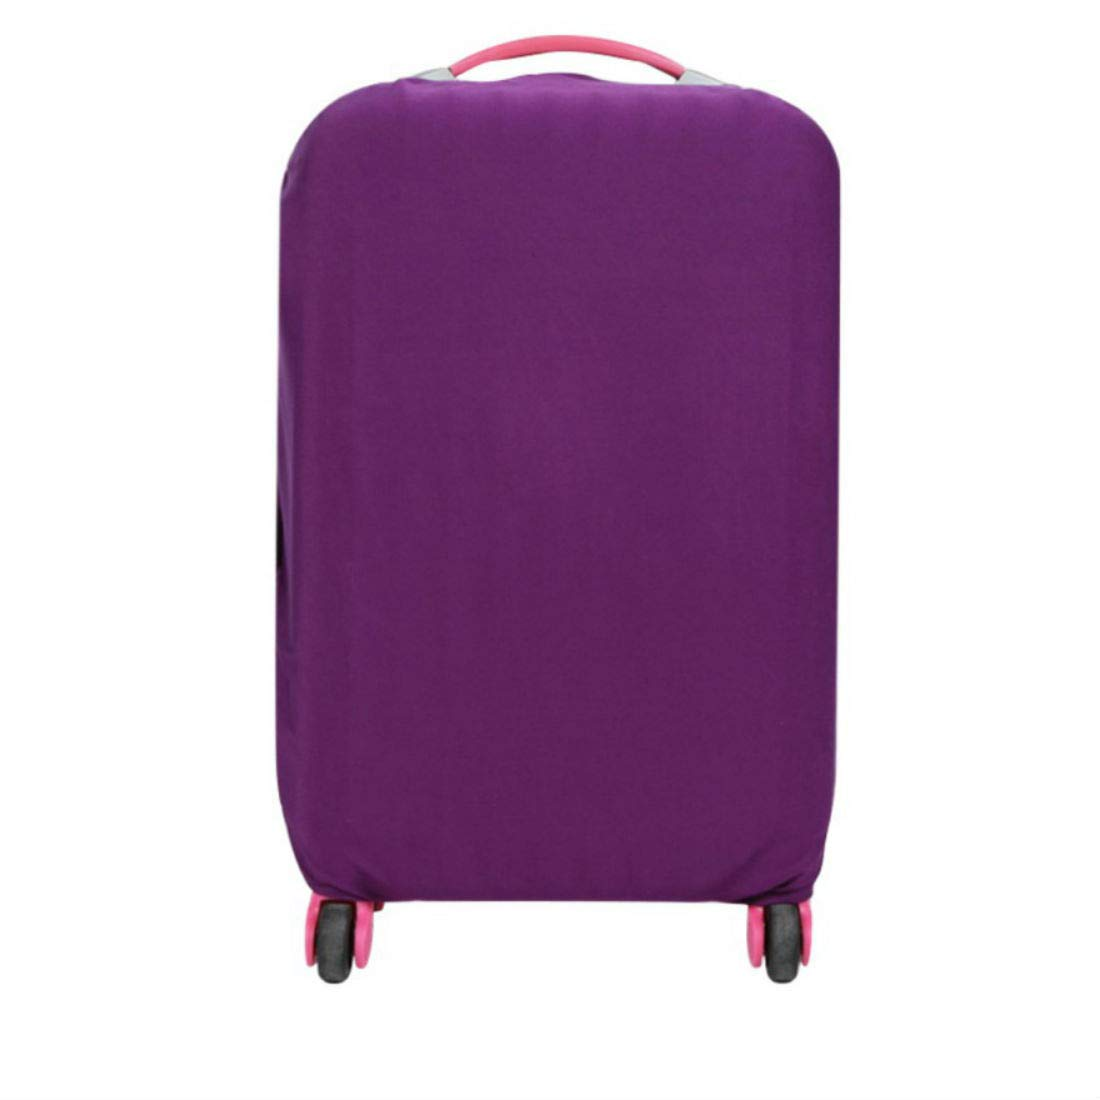 Purple US 18-26 inch Travel Luggage Suitcase Protective Dust-proof Cover Case Protector (M)